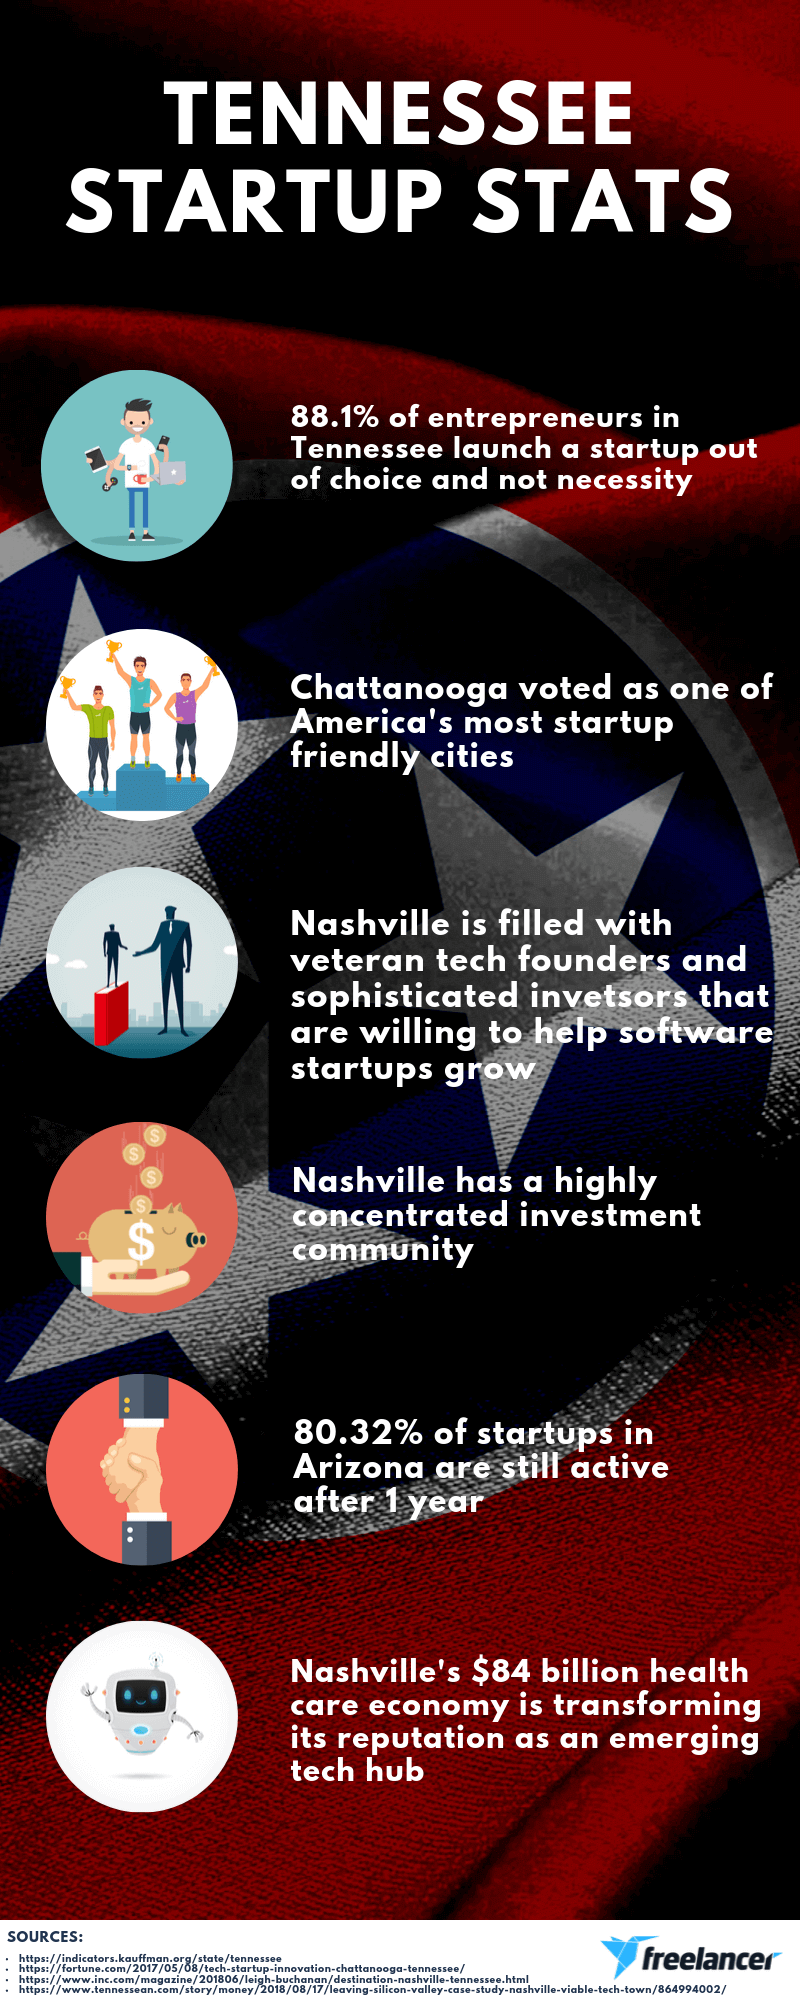 Tennessee startup stats infographic